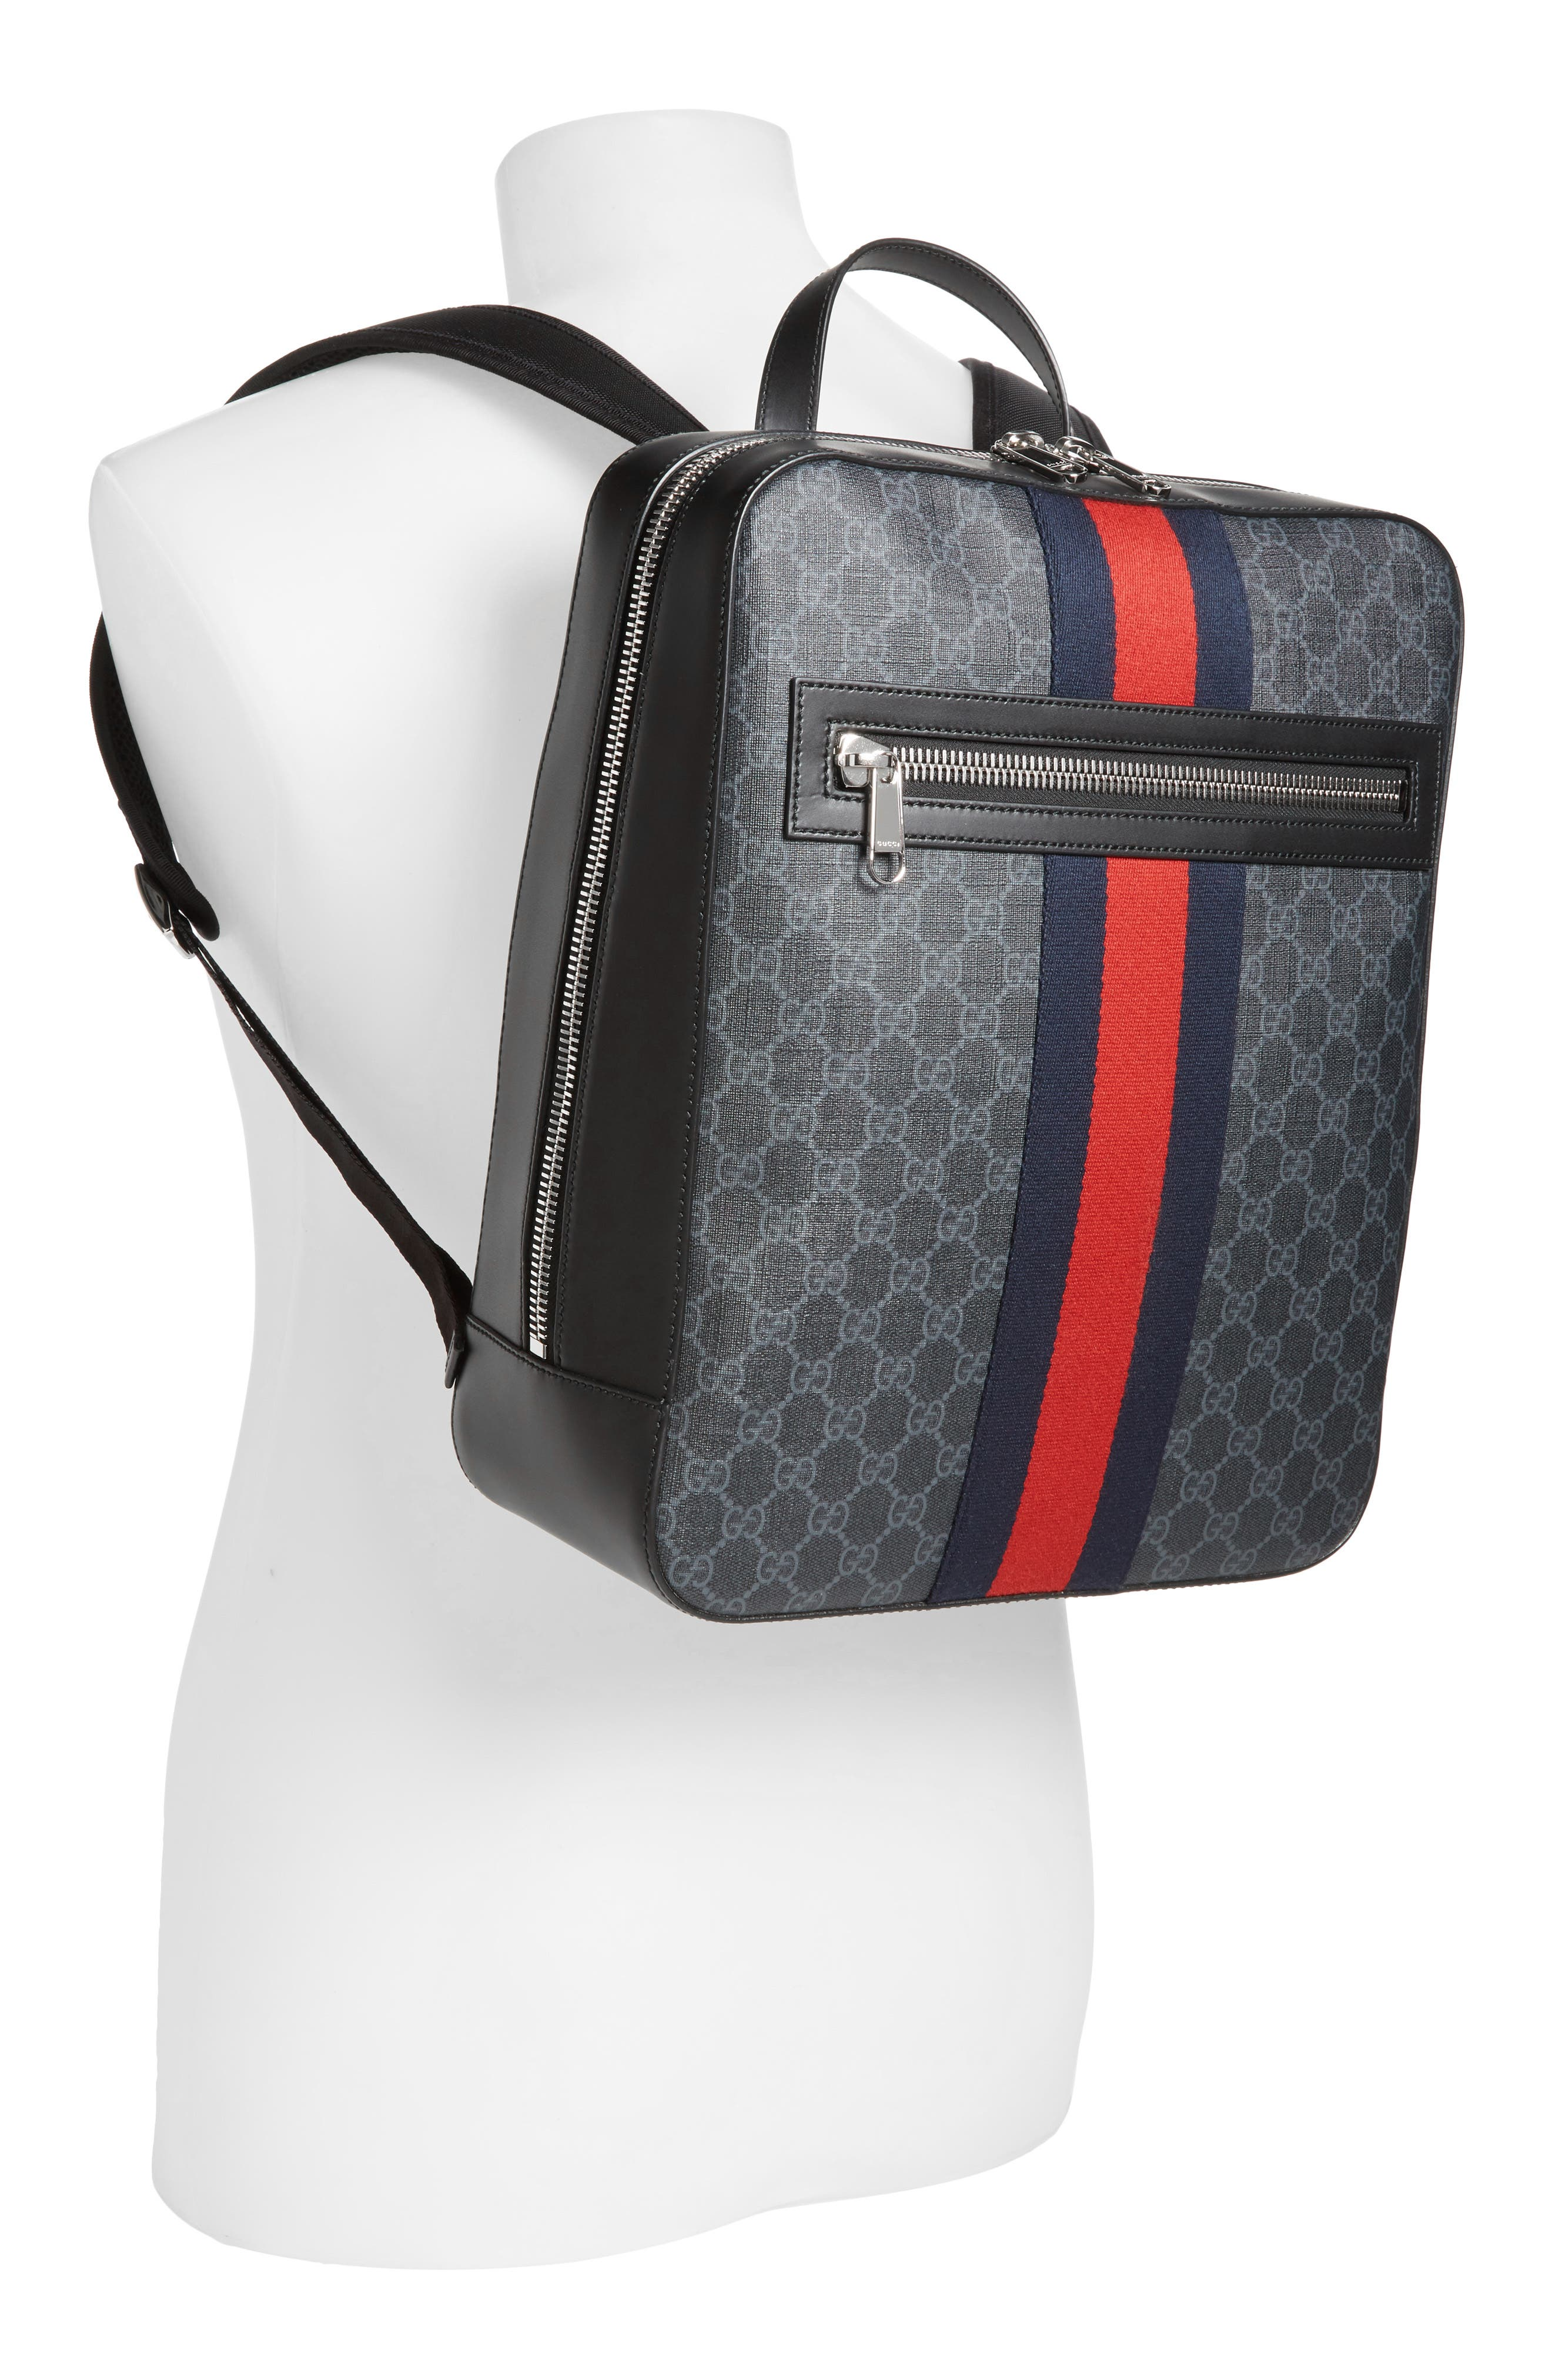 GG Leather Trim Backpack,                             Alternate thumbnail 2, color,